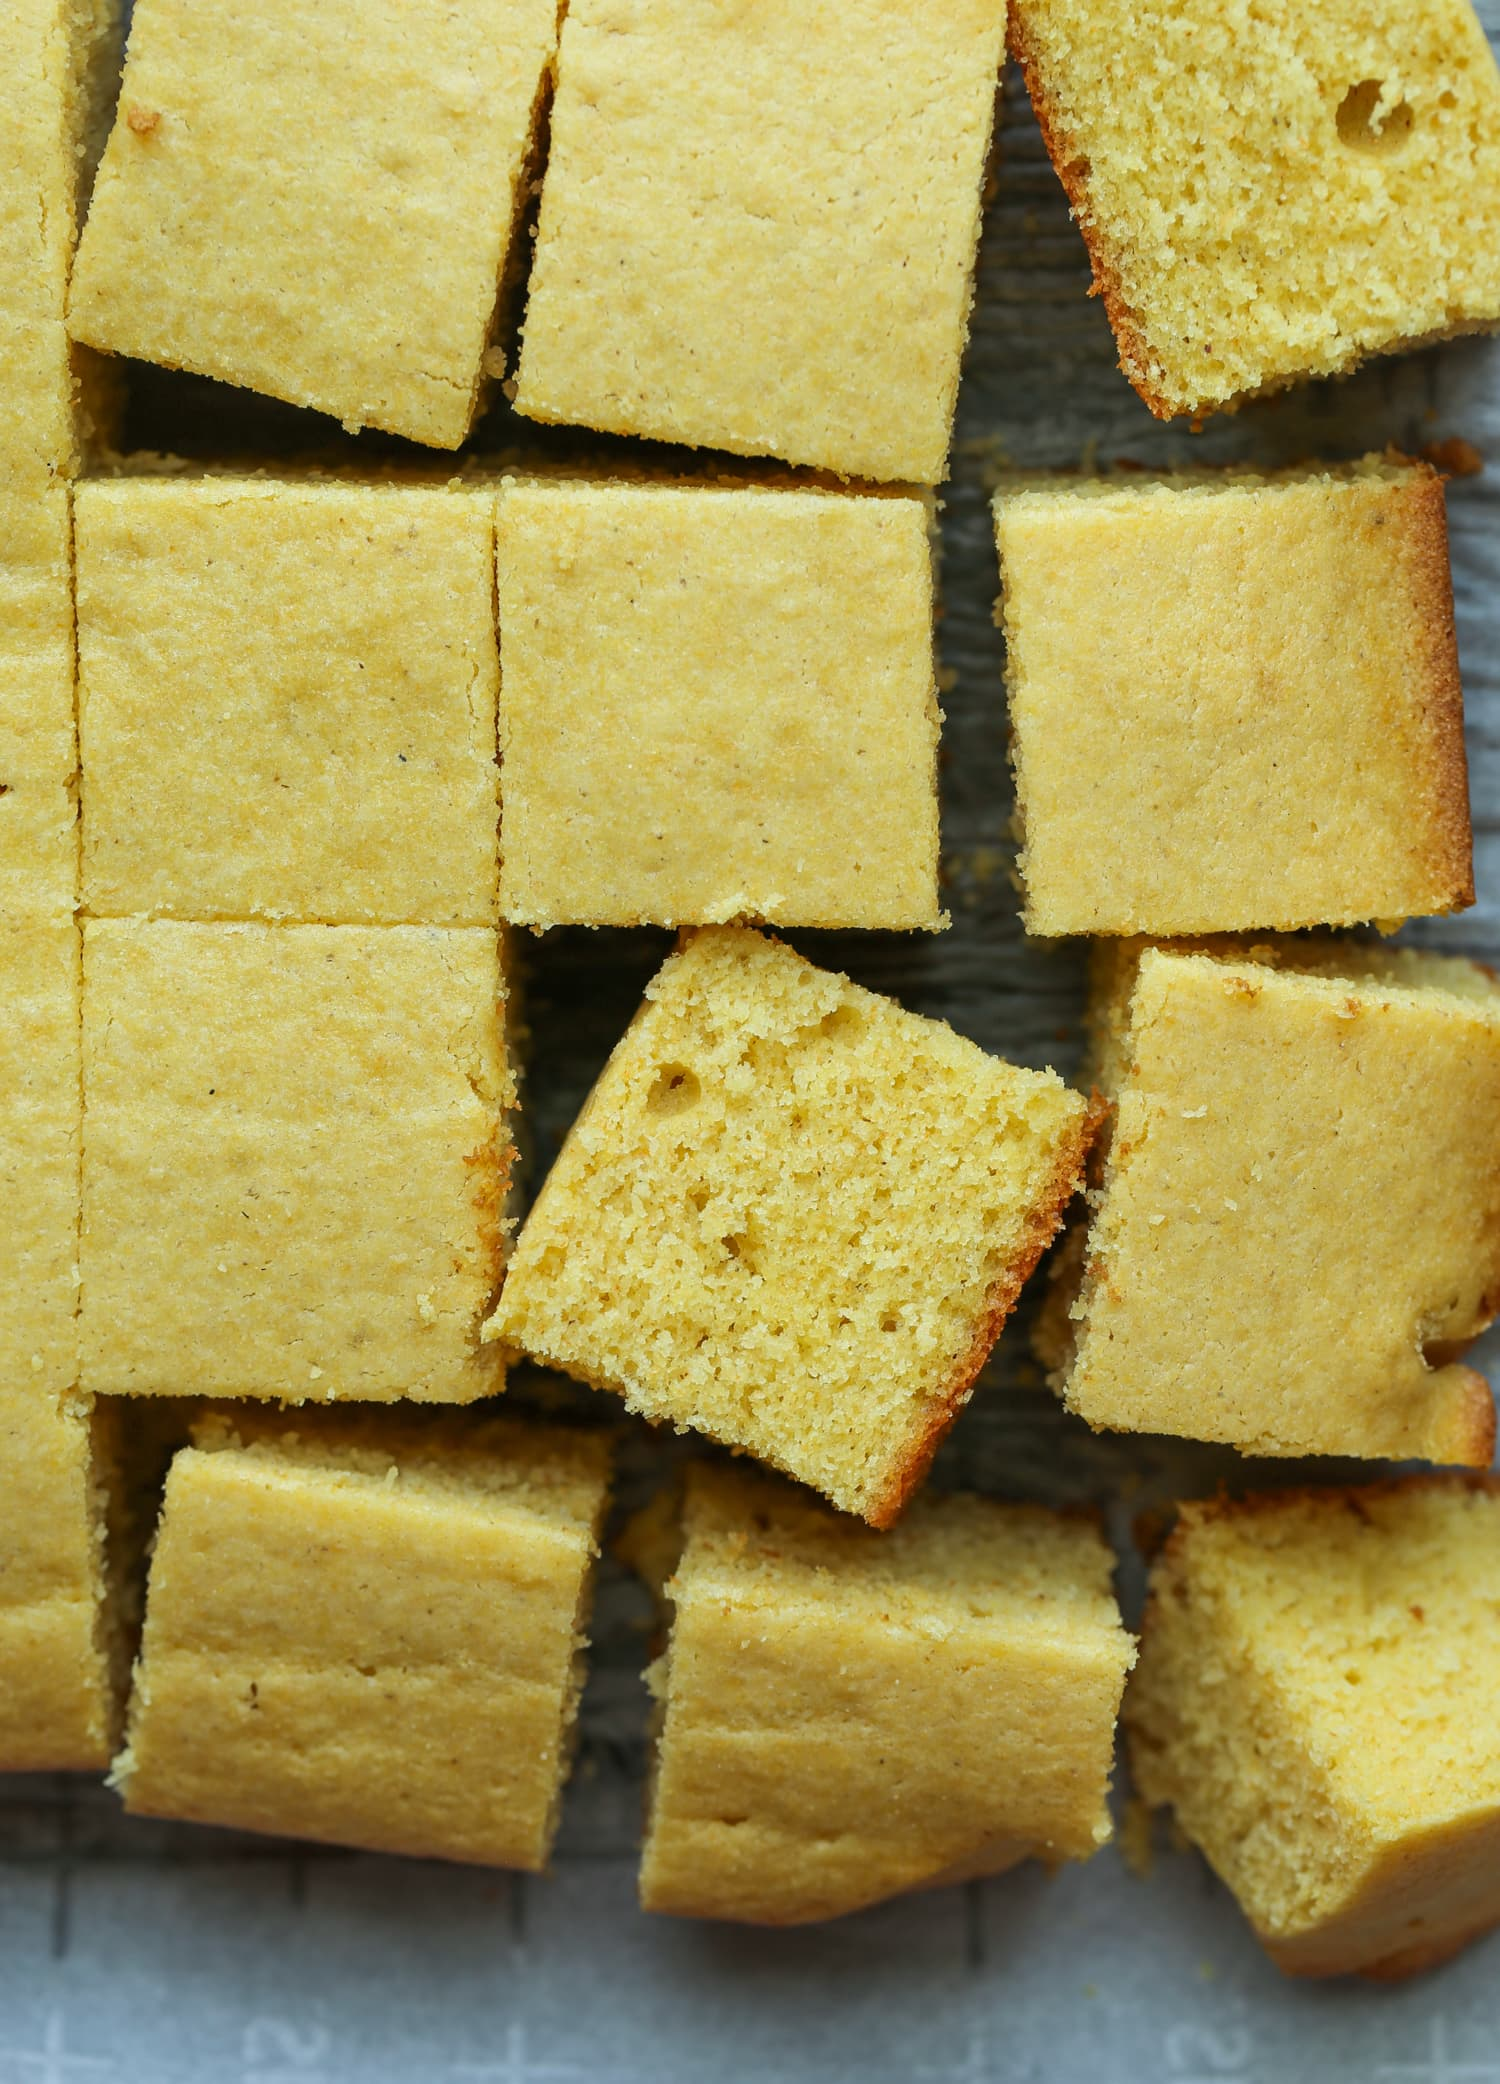 Cornbread cut into squares on a baking sheet.